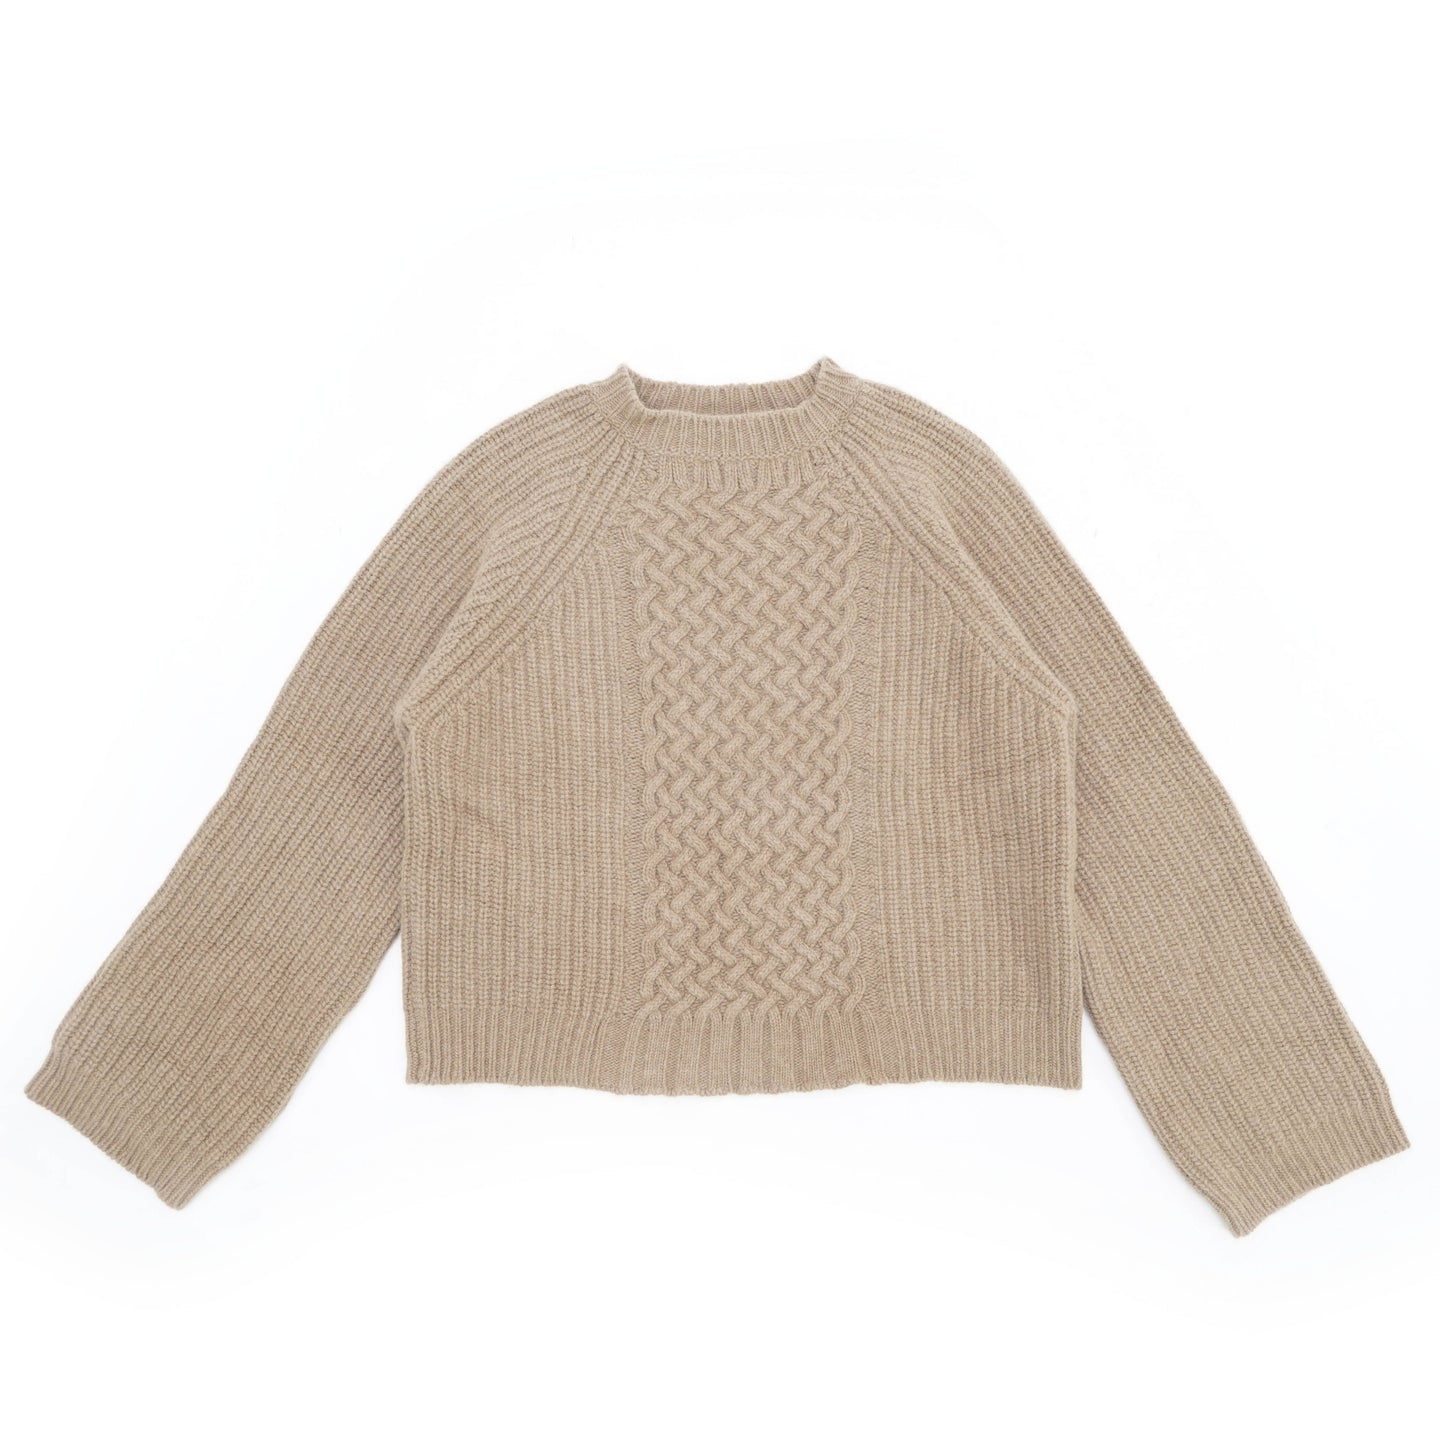 FW18 Cropped Camel Angora Knit